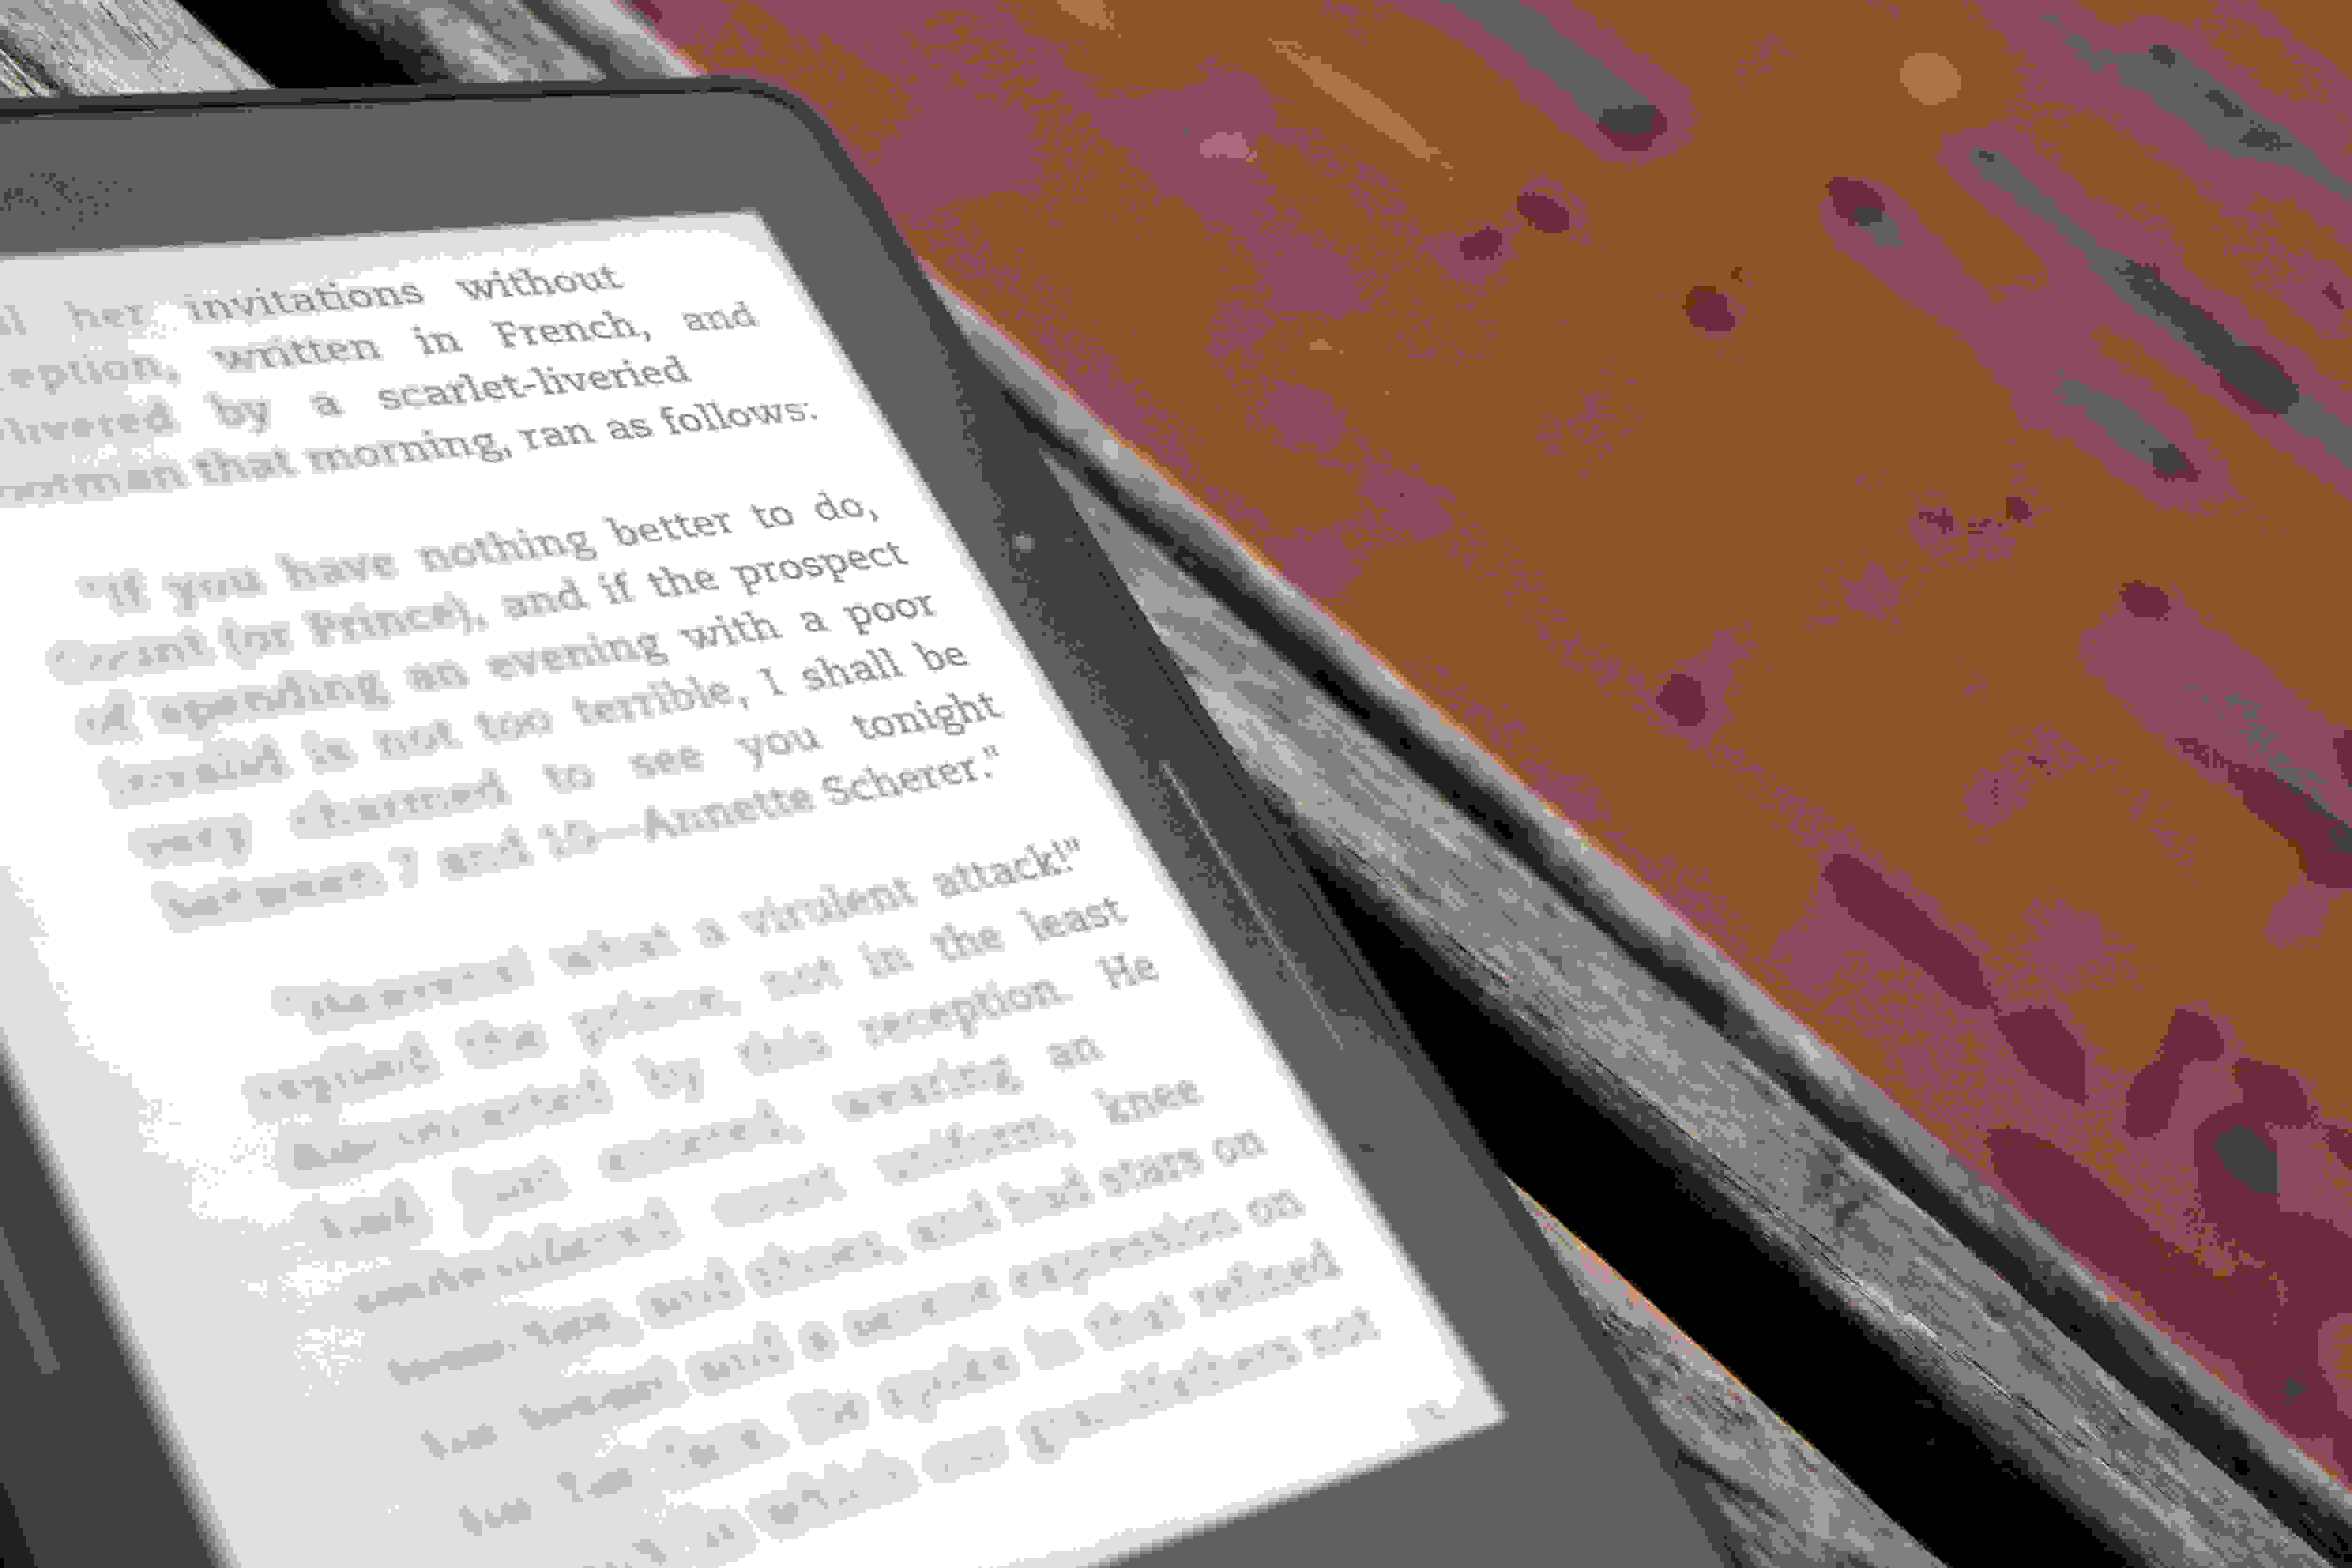 A photo of the Amazon Kindle Voyage's page turn buttons.